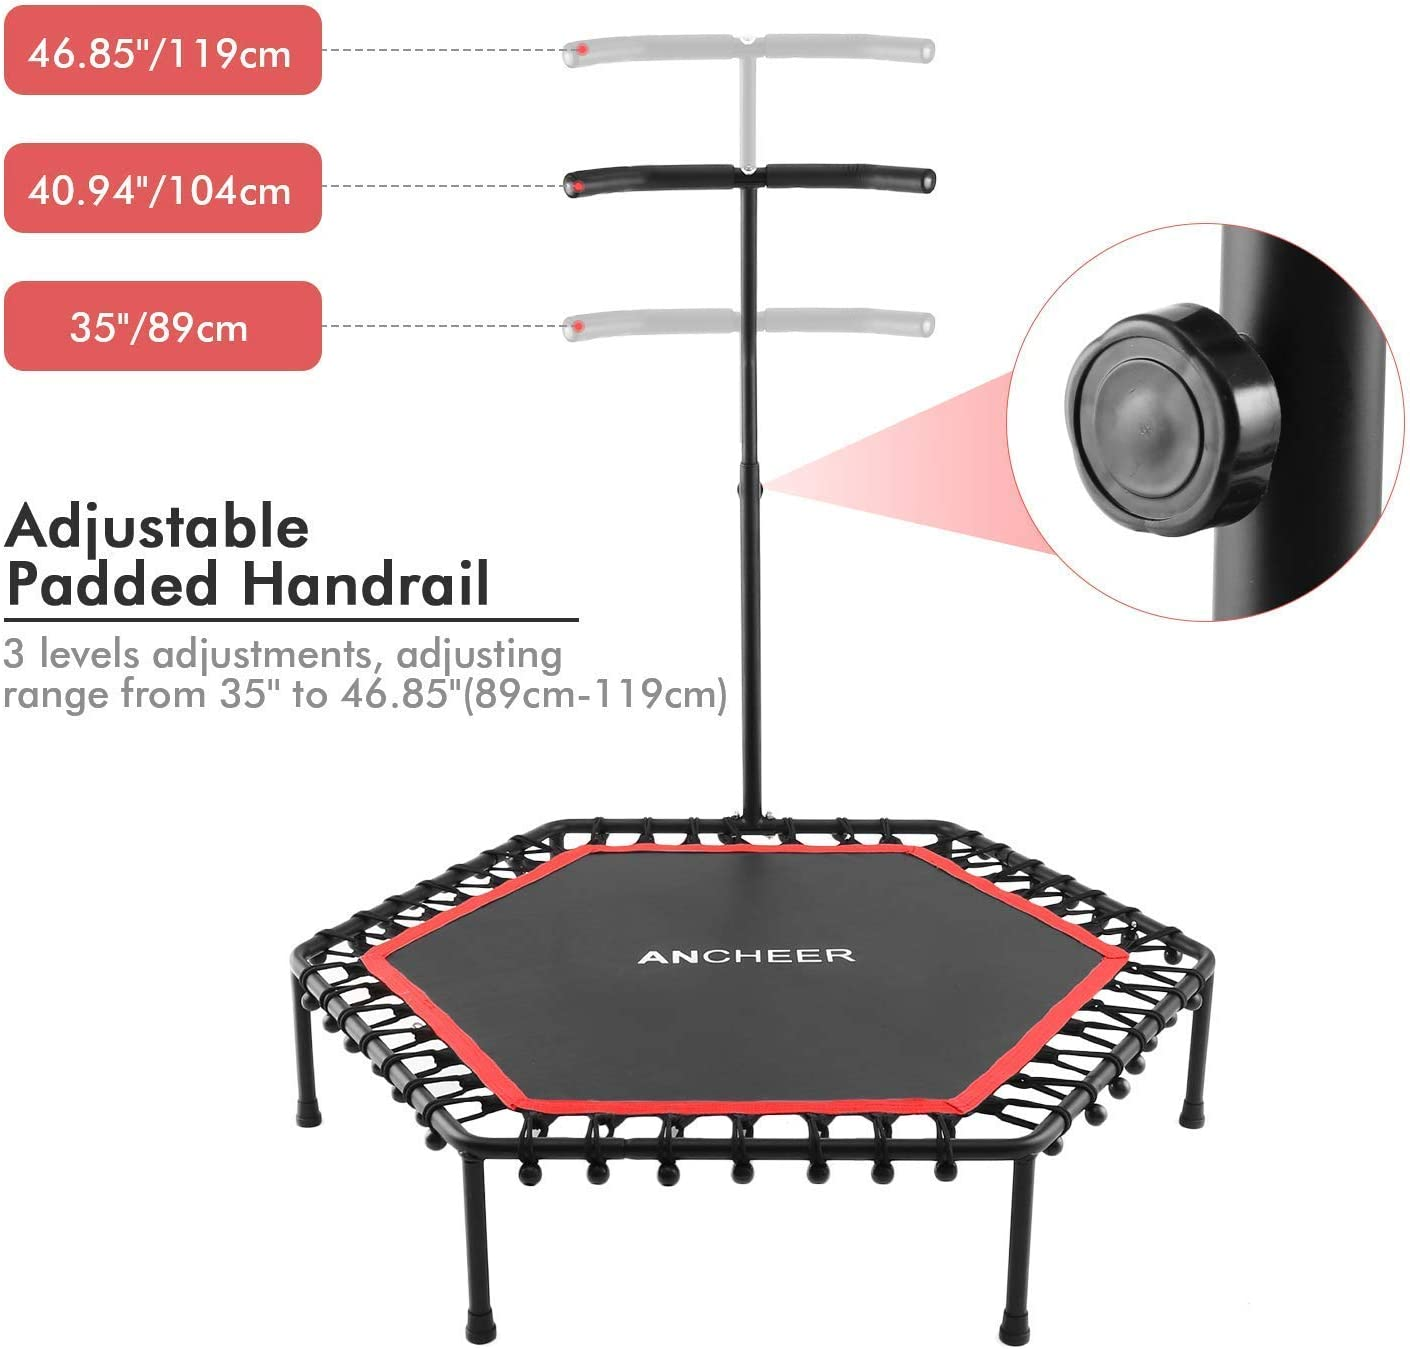 Red Trampolines Trainer with Adjustable Handle Bar for Indoor//Outdoor//Garden//Yoga Workout Cardio Exercise ANCHEER Mini Trampoline 50 Rebounder for Adults Kids Fitness